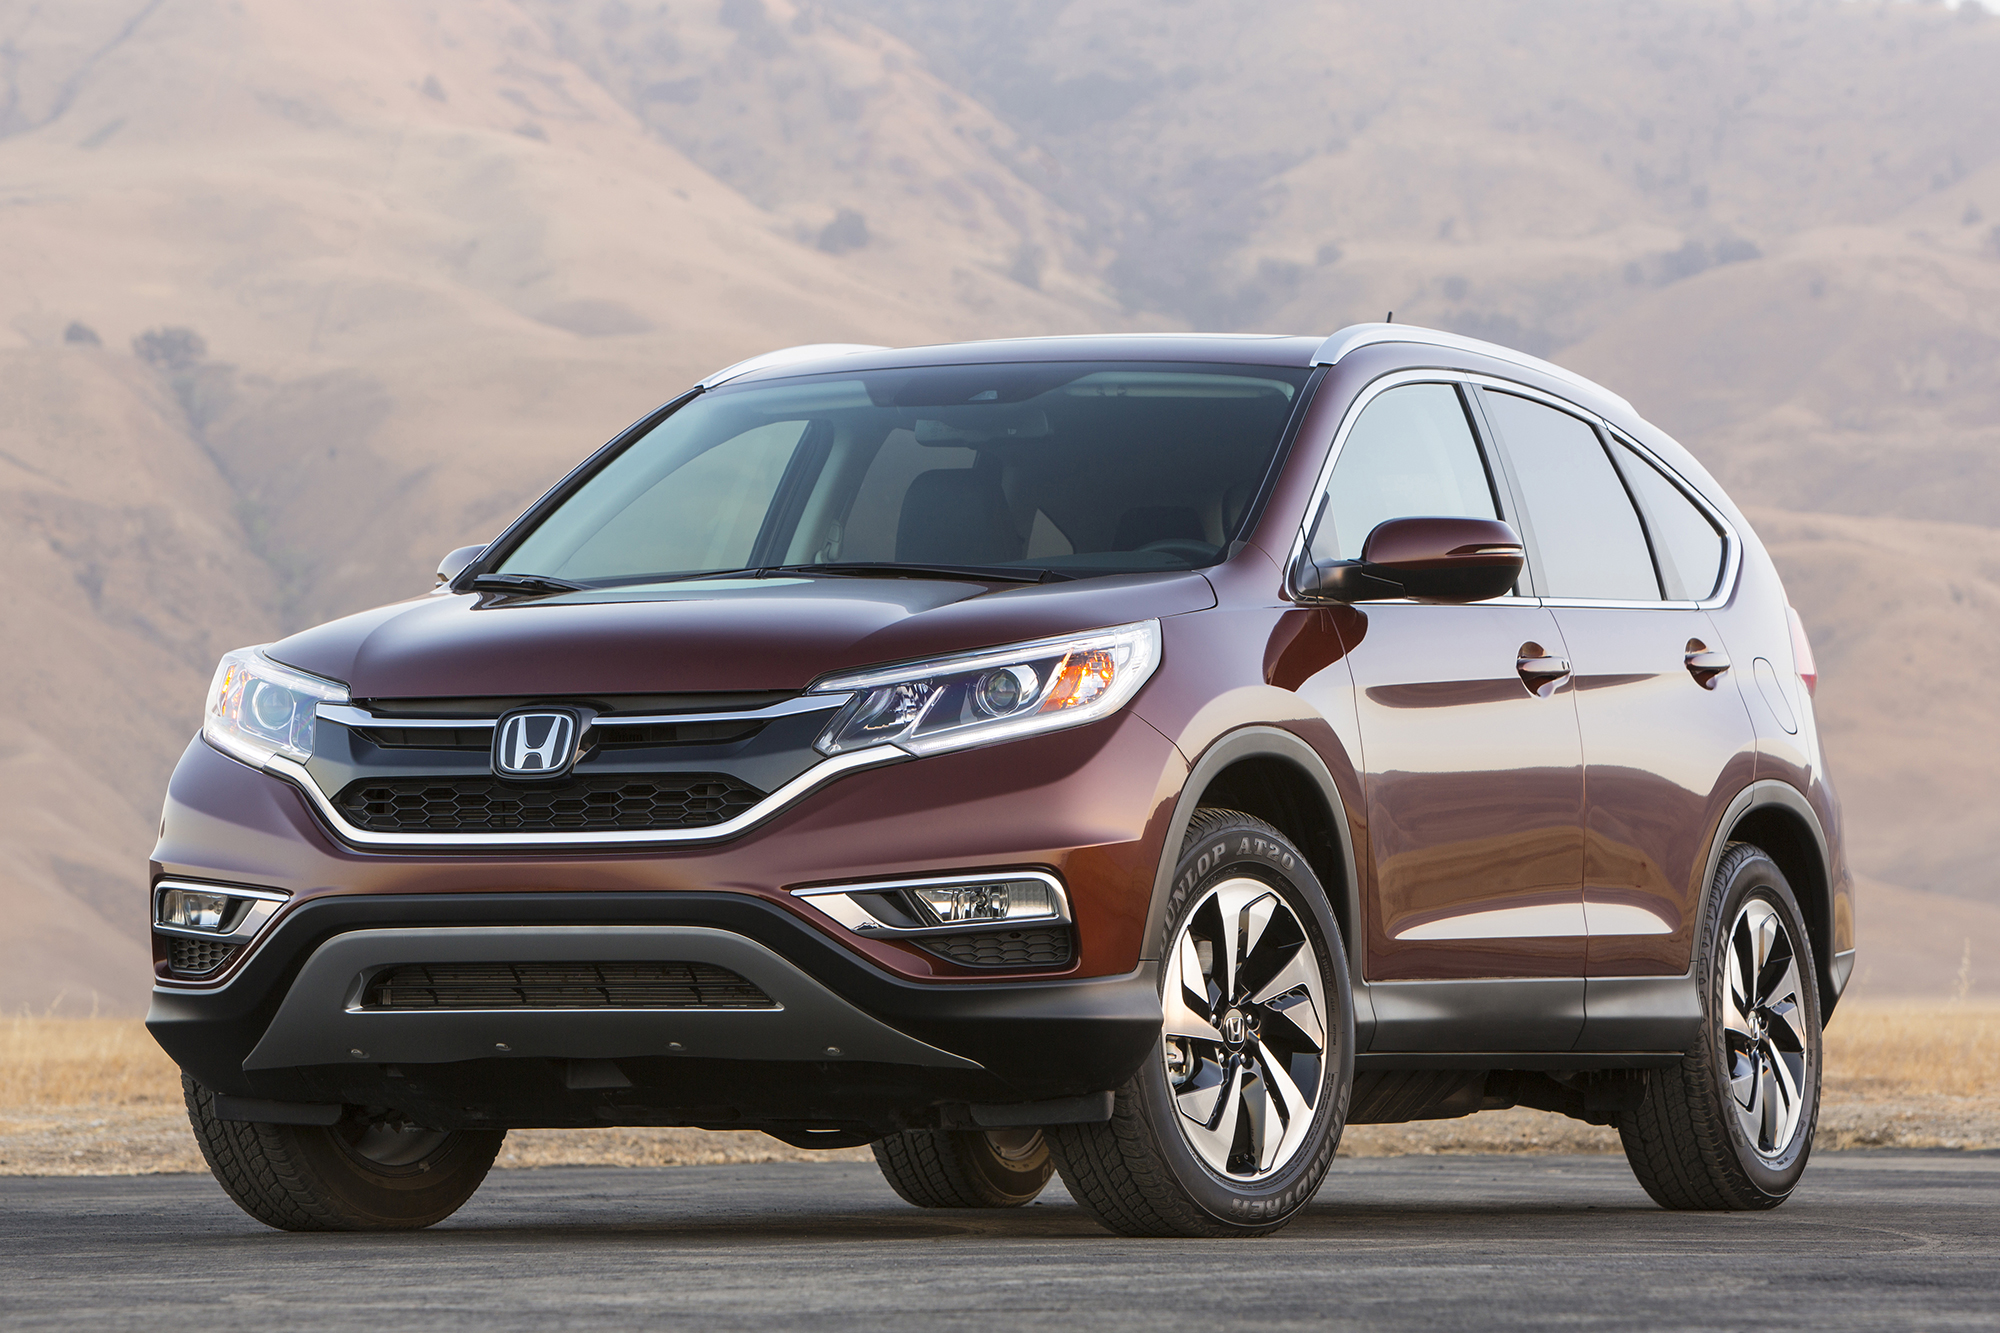 http://www.multivu.com/players/English/7258851-honda-cr-v-named-2015-motor-trend-sport-utility-of-the-year/gallery/image/e3a133af-aa4d-42db-8a6e-ca55a1744288.HR.jpg